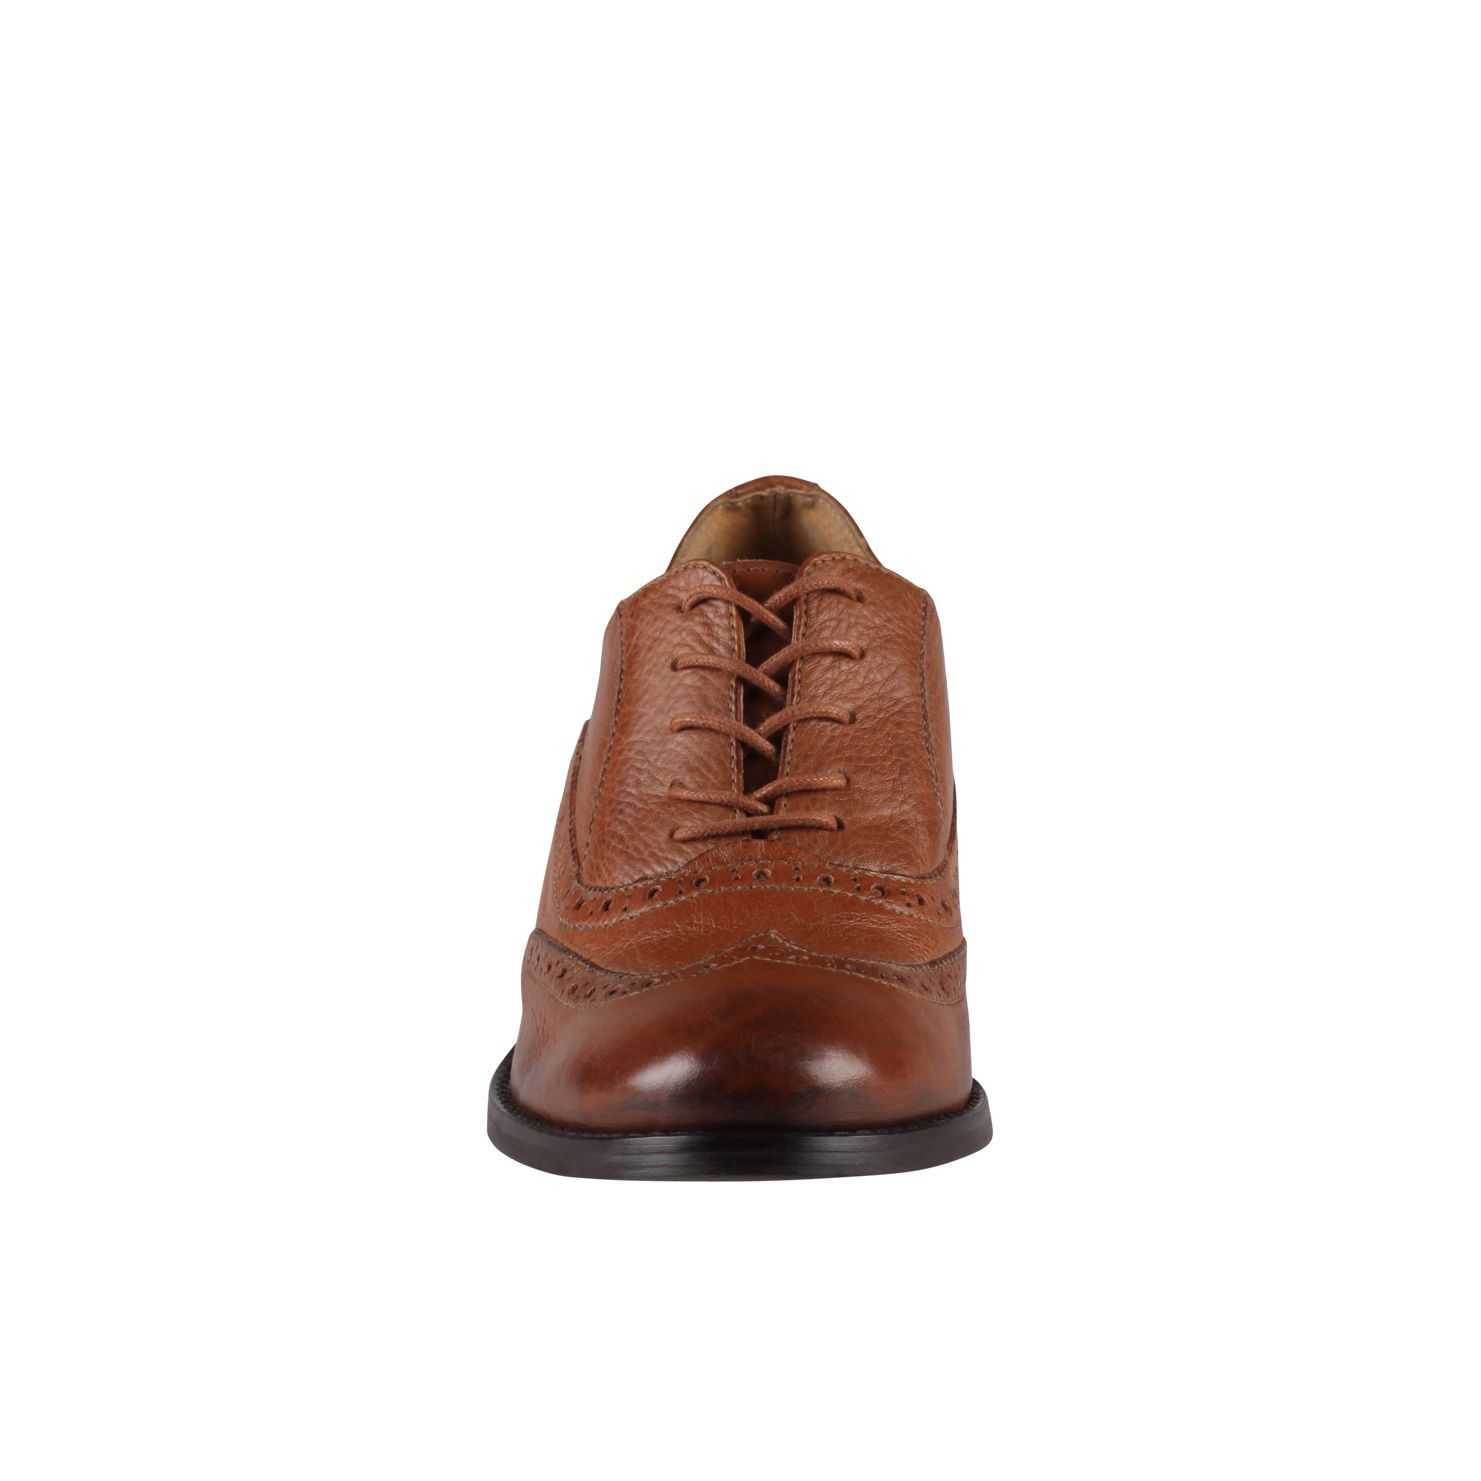 Nogoya brogue shoes